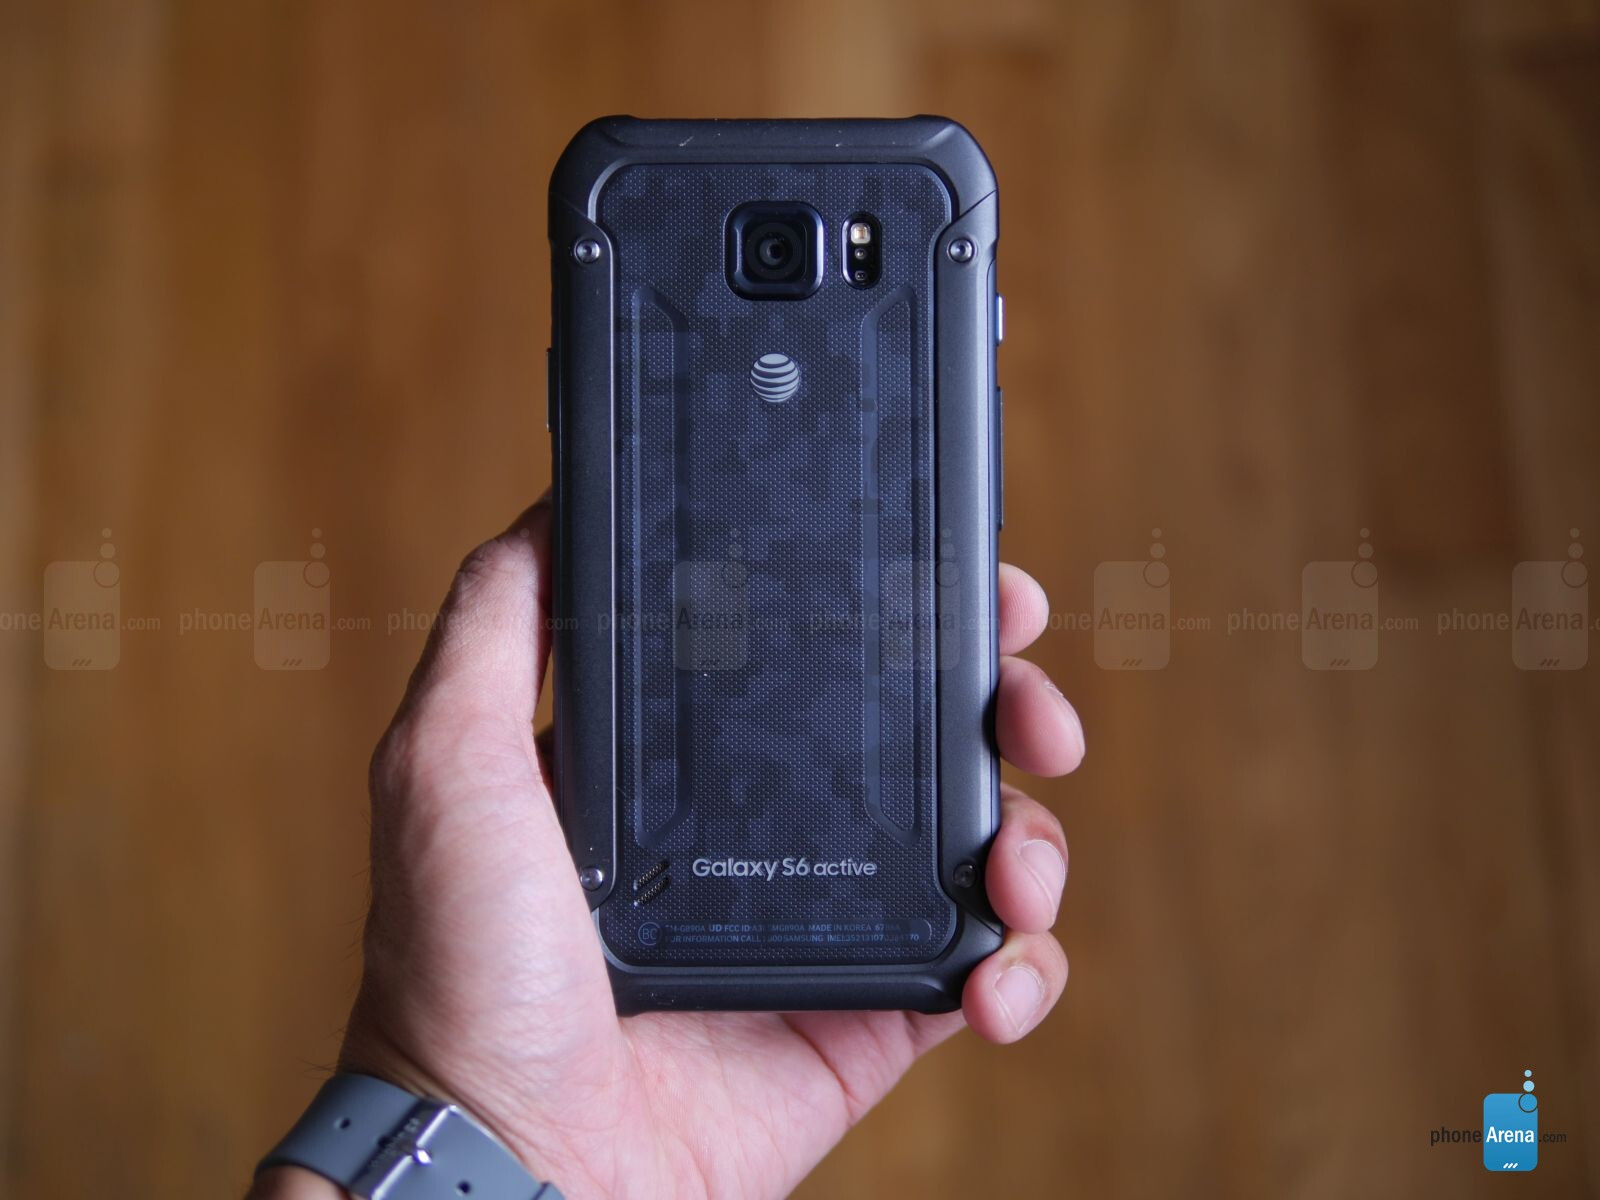 samsung galaxy s6 active unboxing. Black Bedroom Furniture Sets. Home Design Ideas